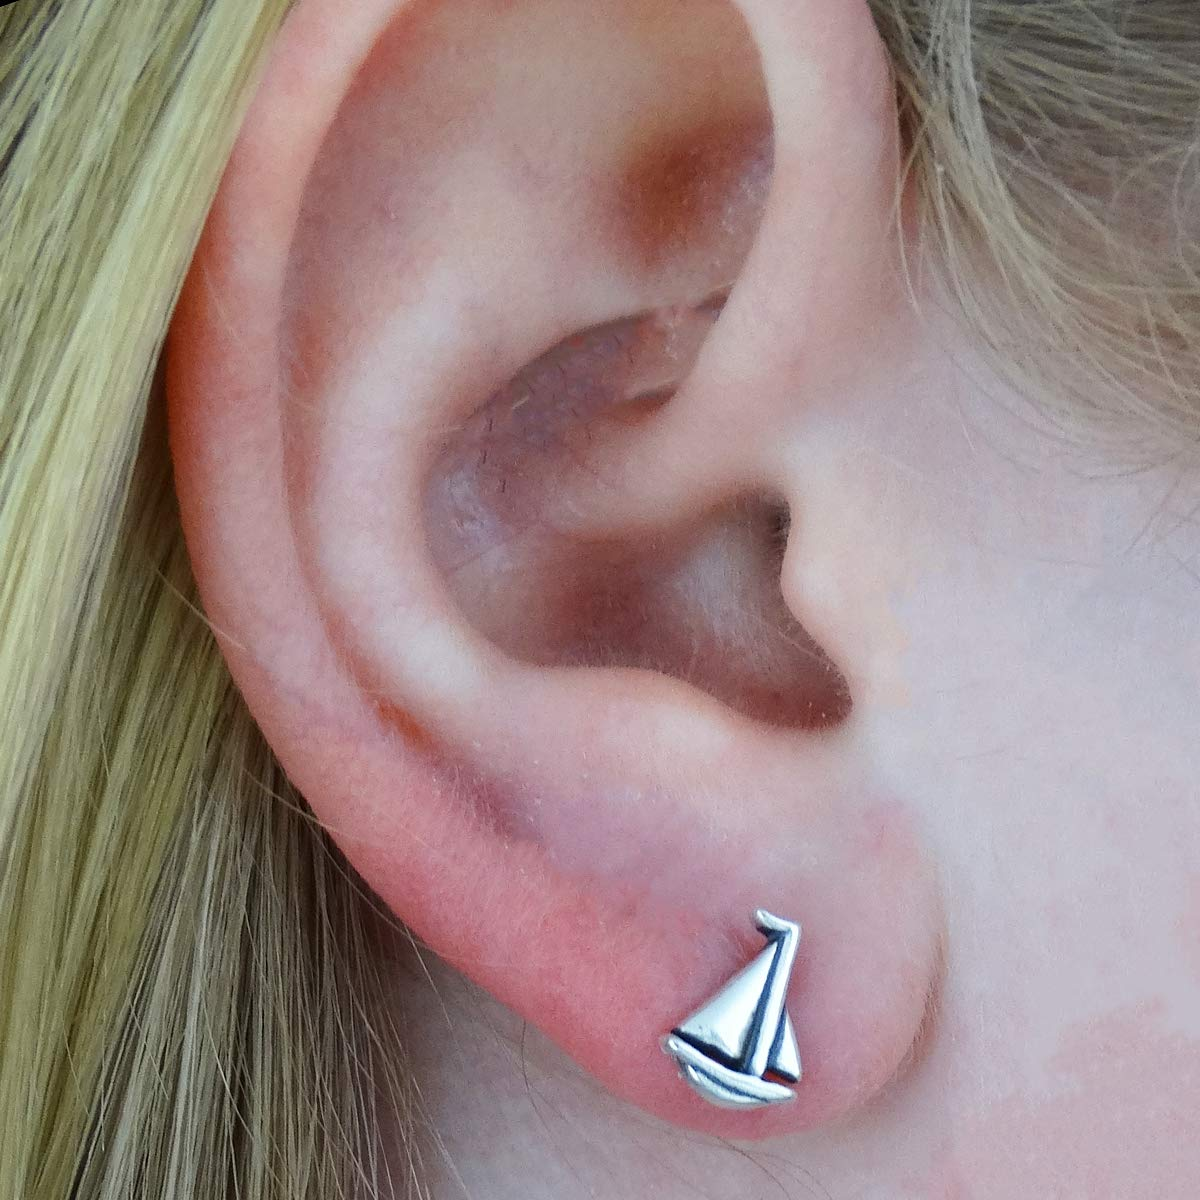 Sterling Silver Sailboat Stud Earrings Posts with Butterfly Backings